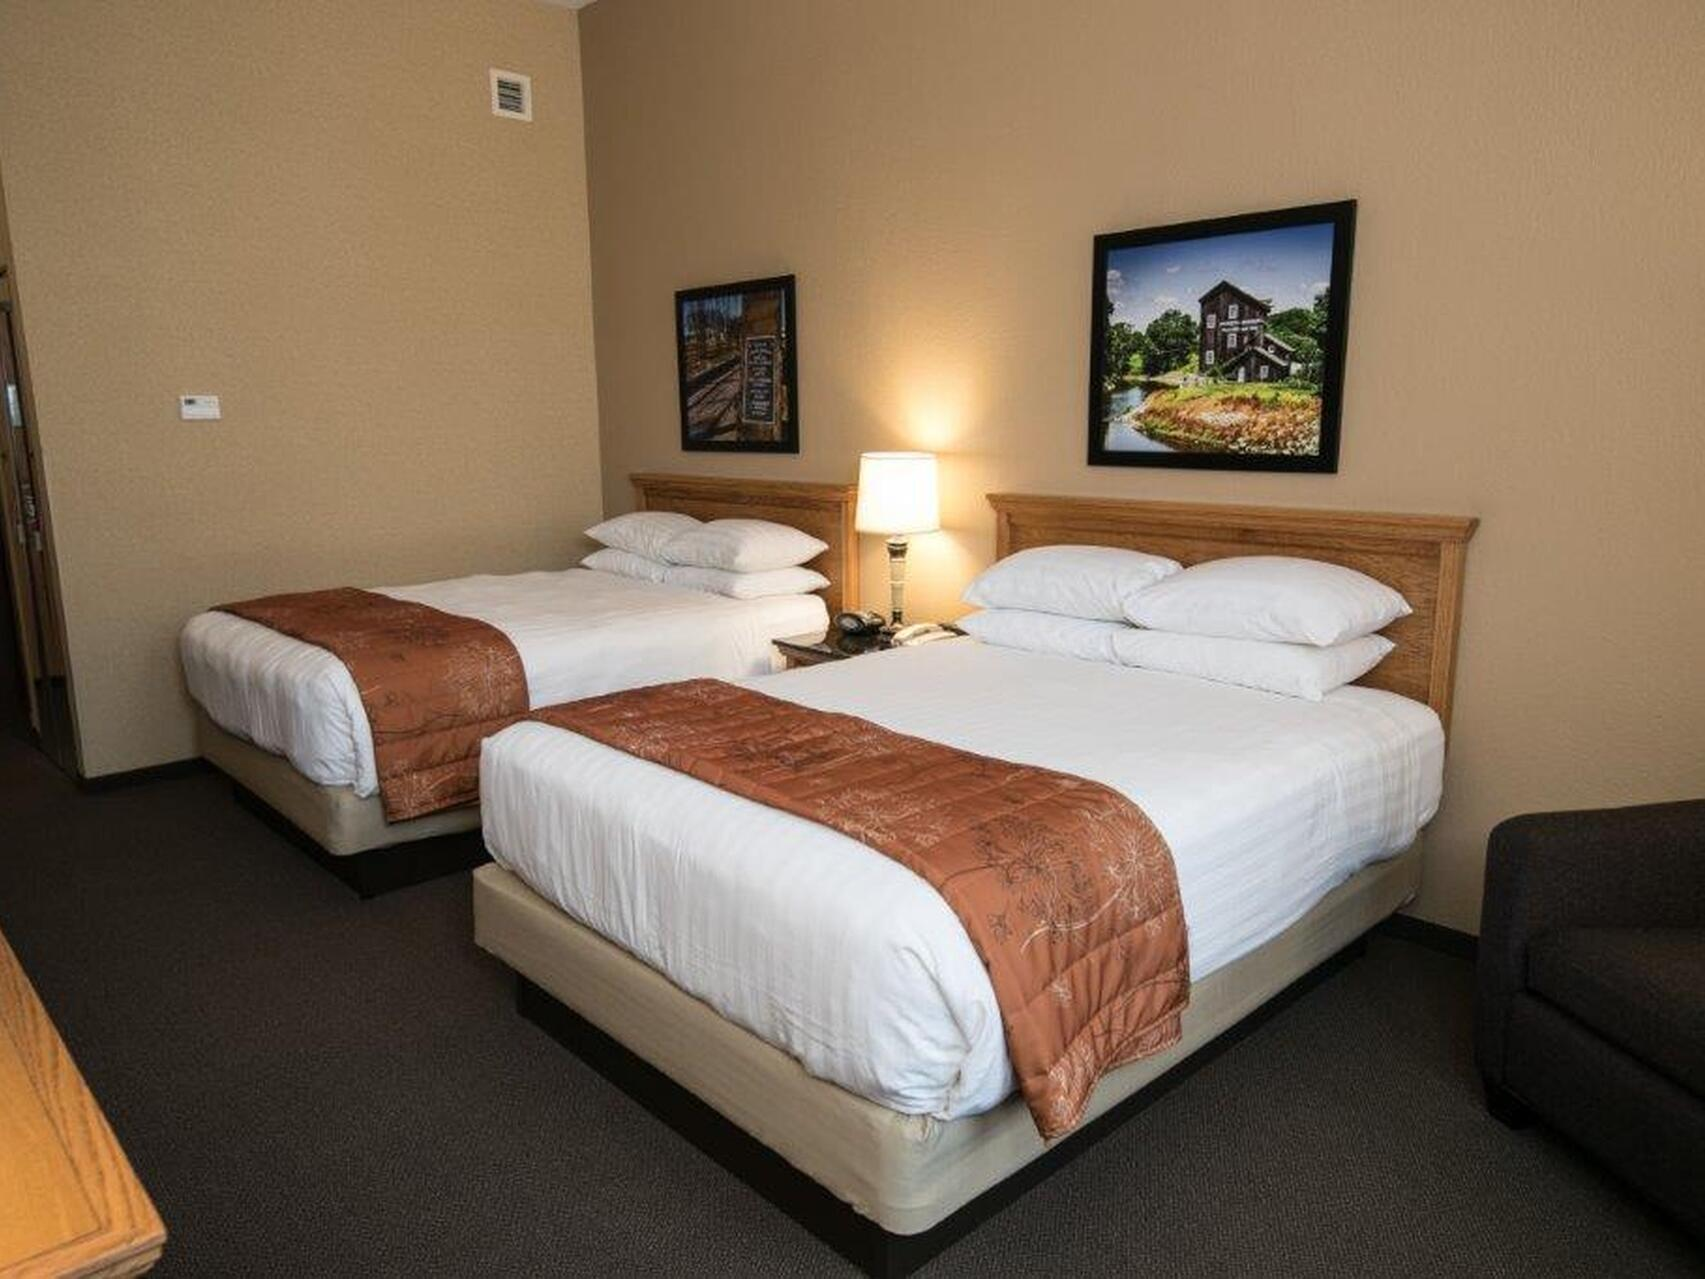 2 Double beds in Queen Terrace River View at Marv Herzog Hotel